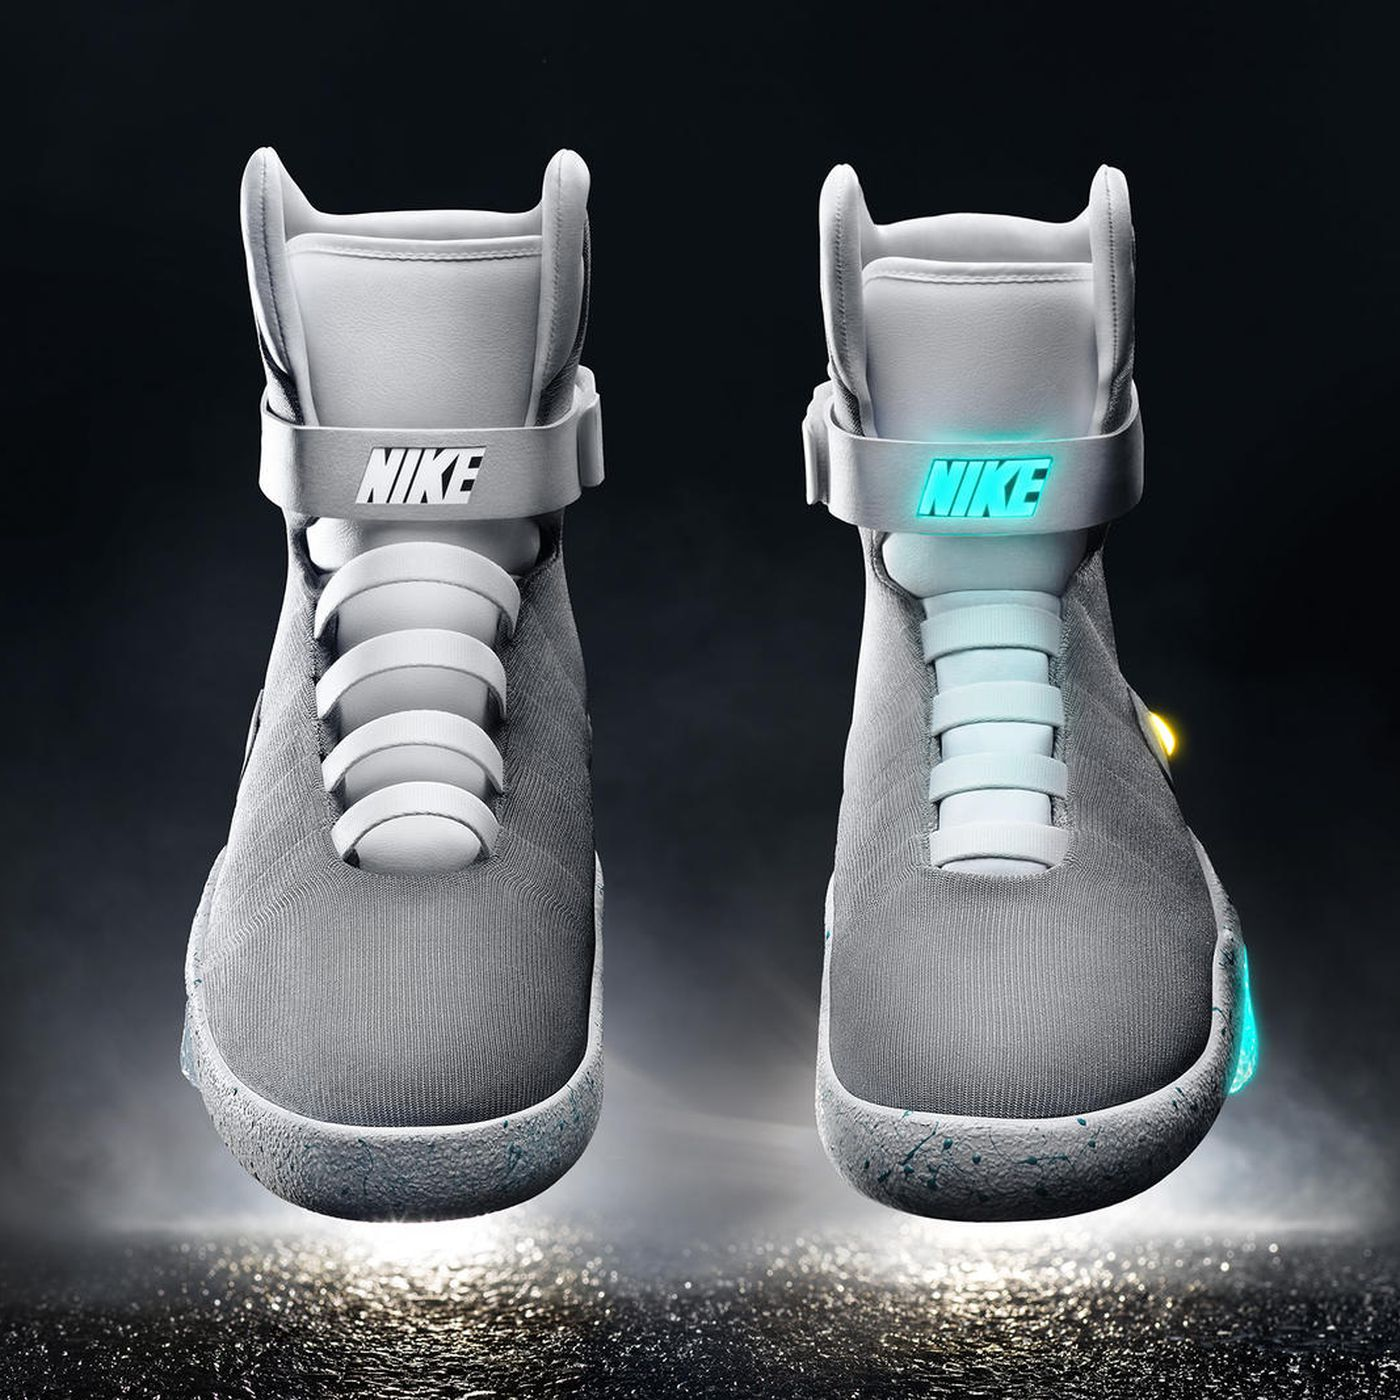 f1093fea73a Nike will sell the self-lacing sneakers from Back to the Future in 2016 -  The Verge